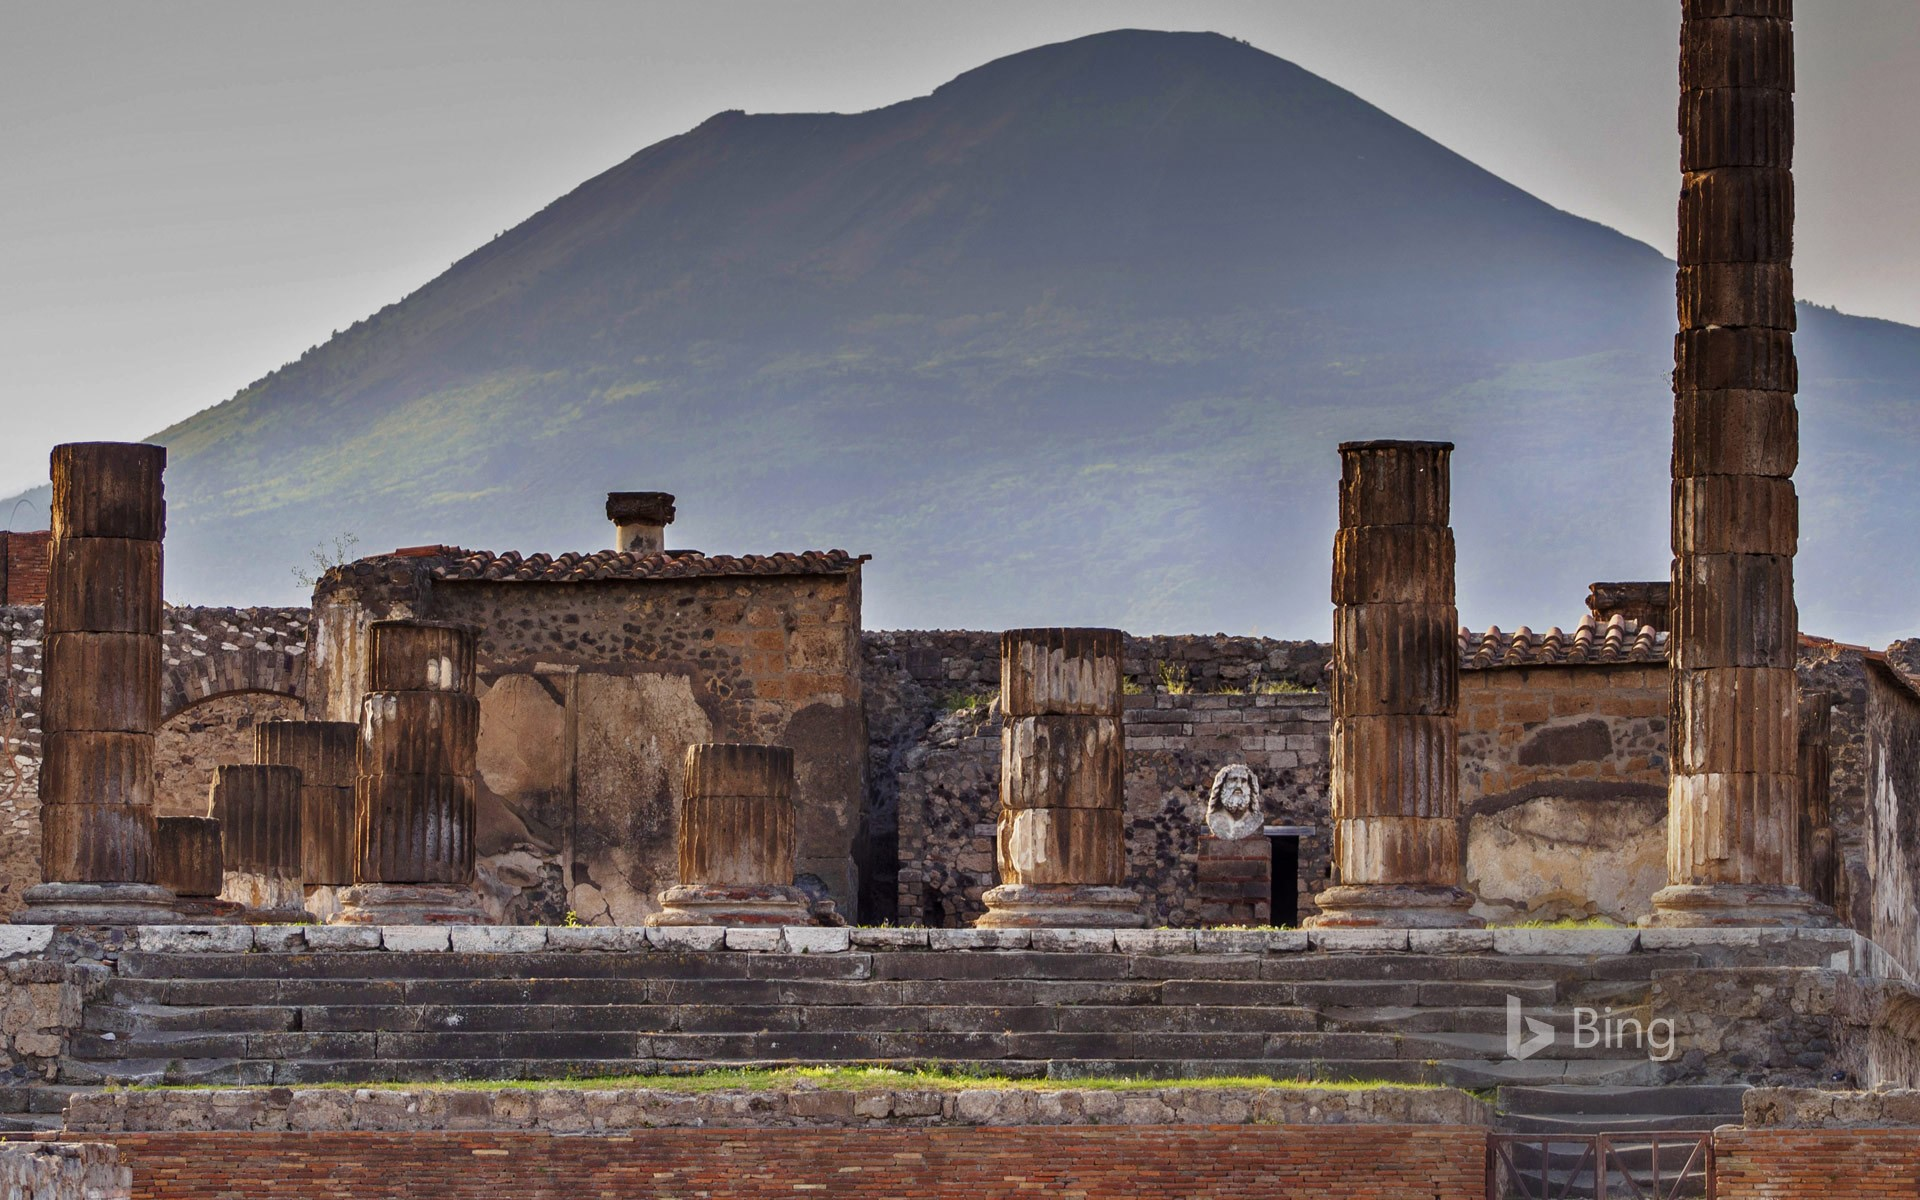 The Temple of Jupiter and Mount Vesuvius from Pompeii, Italy